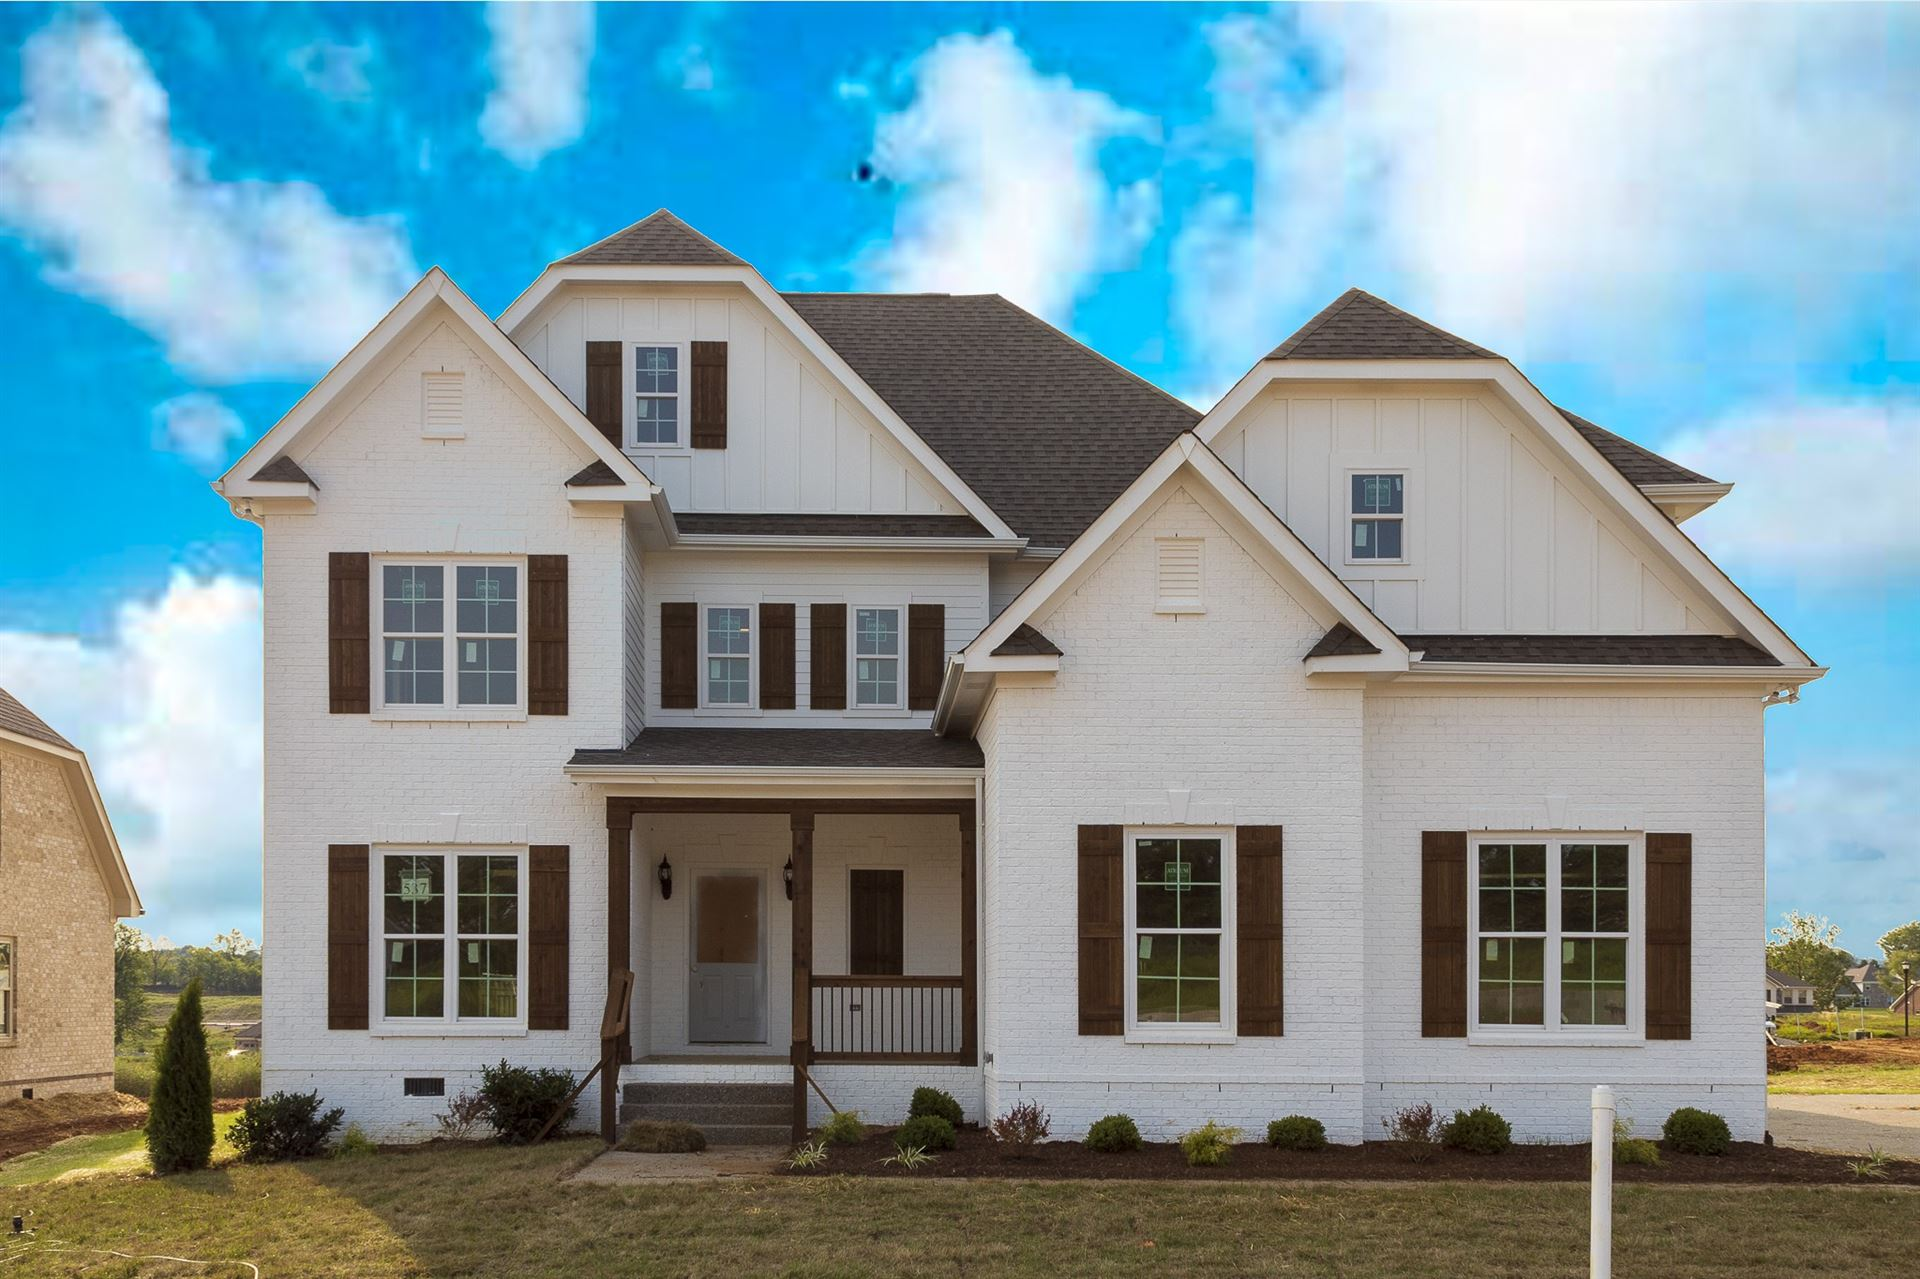 9033 Safe Haven Place Lot 548, Spring Hill, TN 37174 - MLS#: 2190030